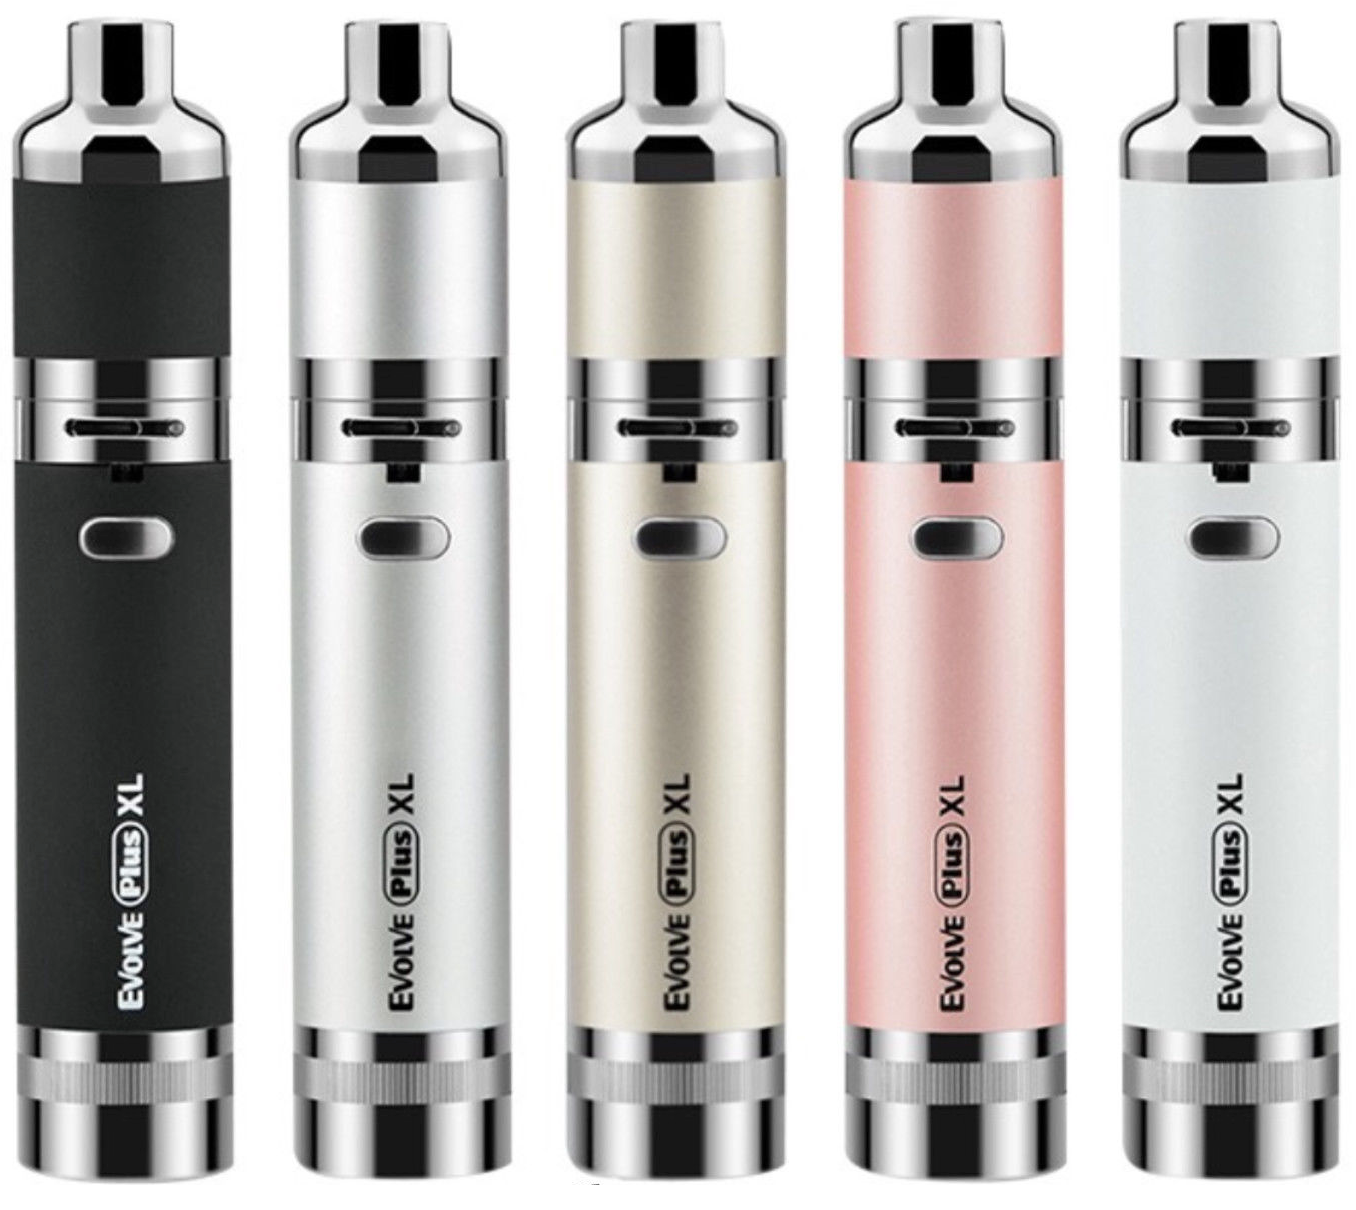 Yocan Vaporizers To Buy In 2019